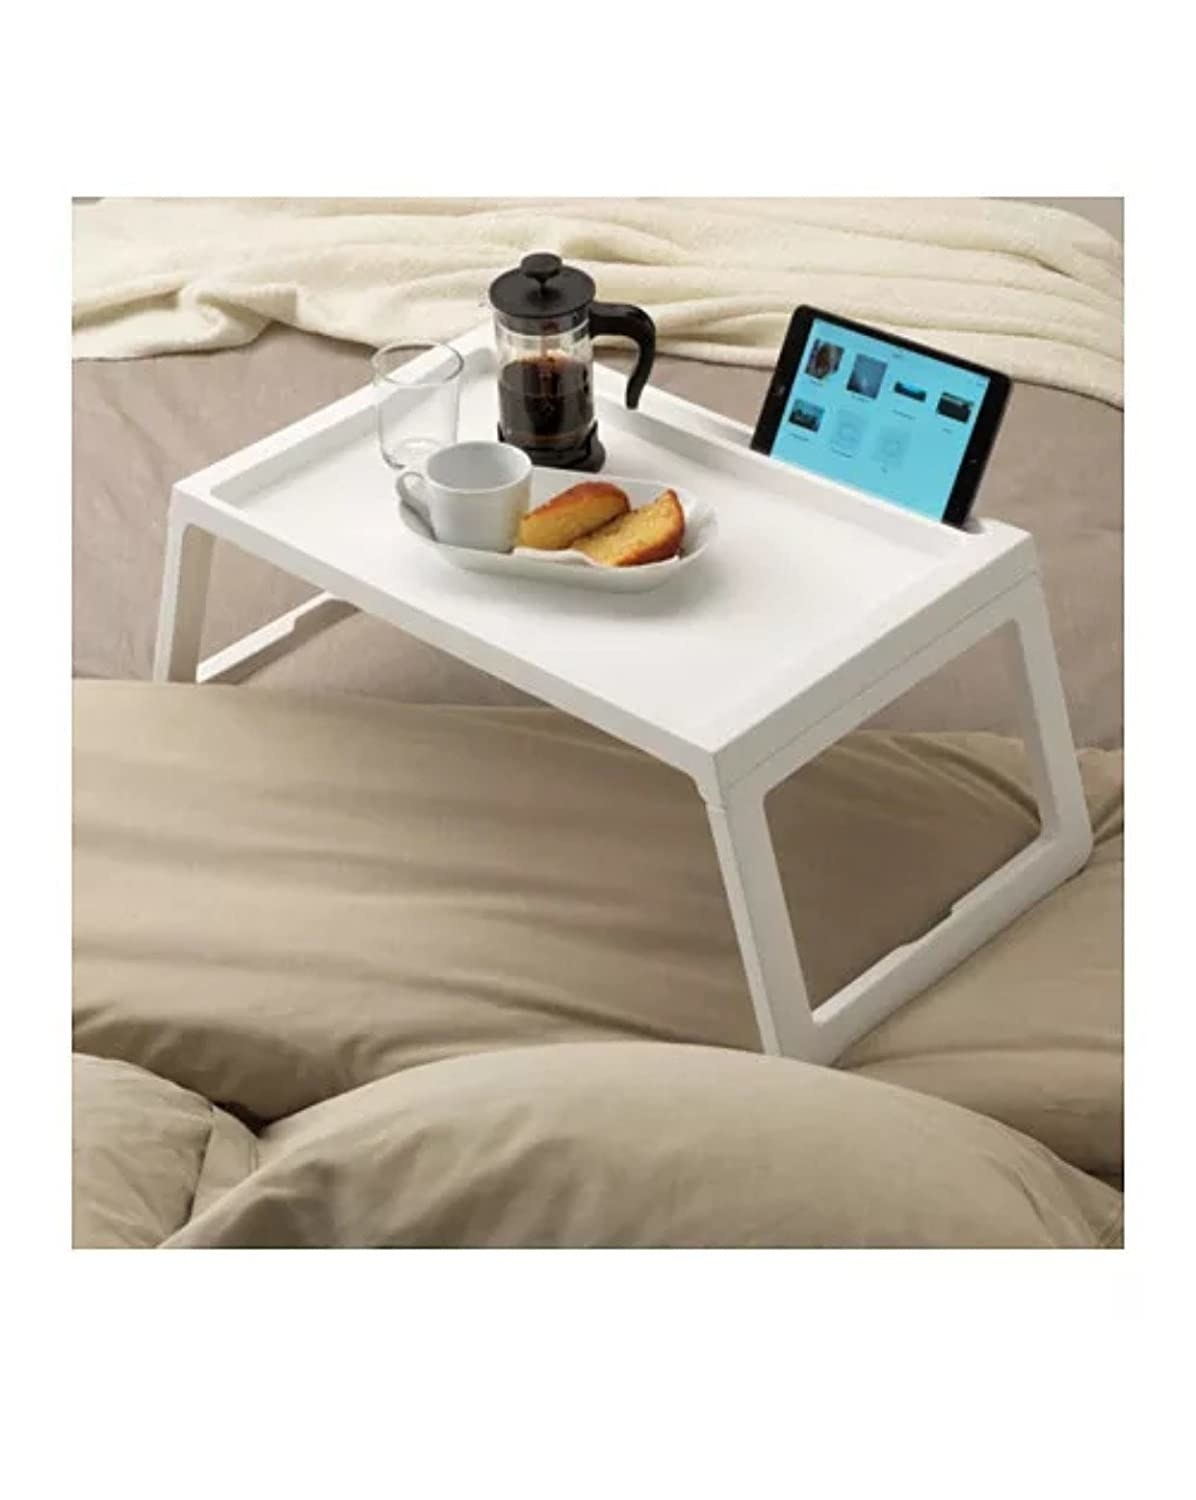 A white lap desk